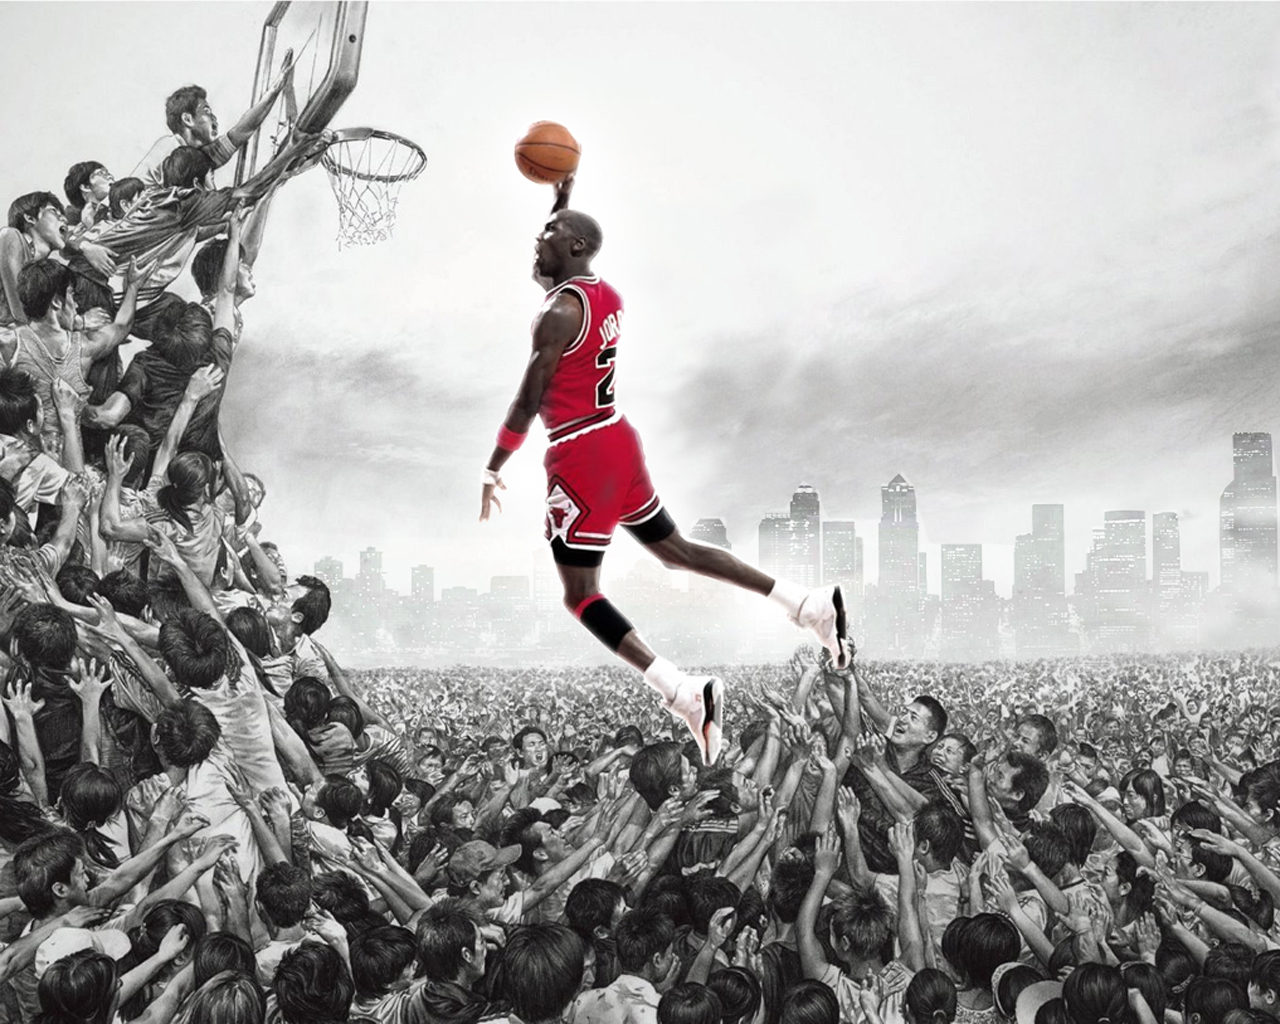 Pin free download michael jordan wallpaper 28957 hd wallpapers on - Michael Jordan Wallpapers Hd Source Michael Jordan Logo Logo Brands For Free Hd 3d